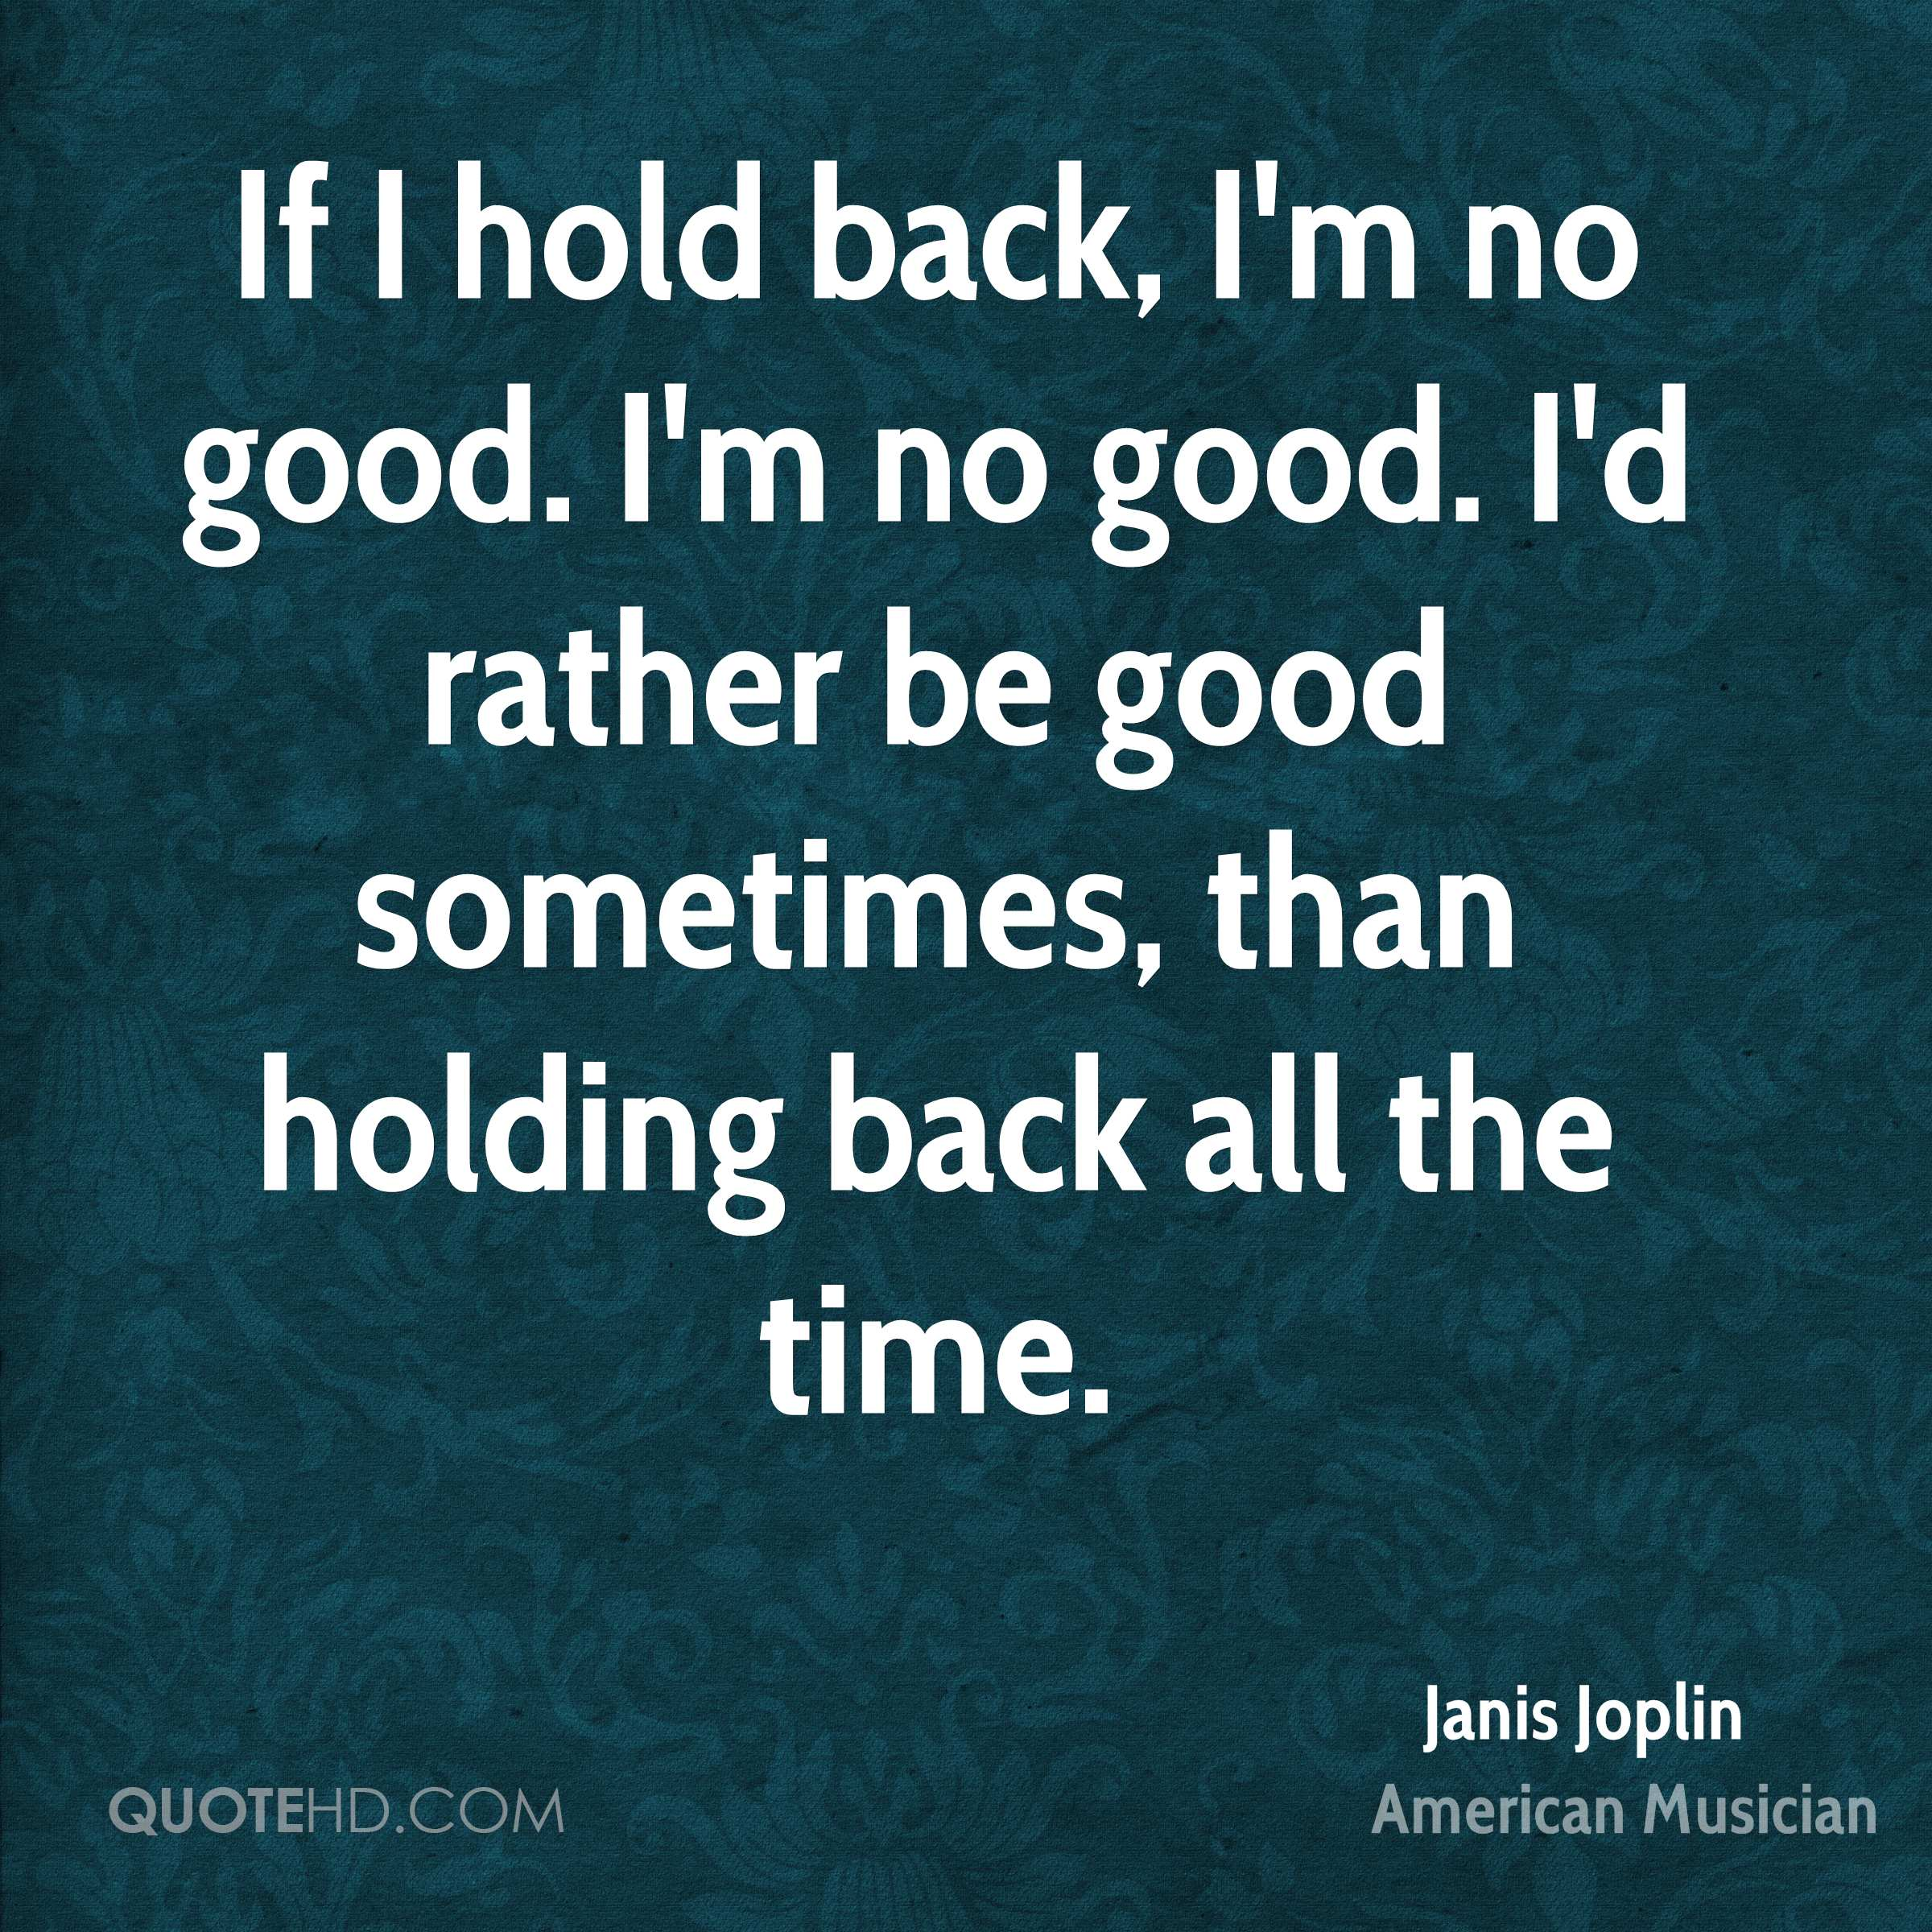 If I hold back, I'm no good. I'm no good. I'd rather be good sometimes, than holding back all the time.